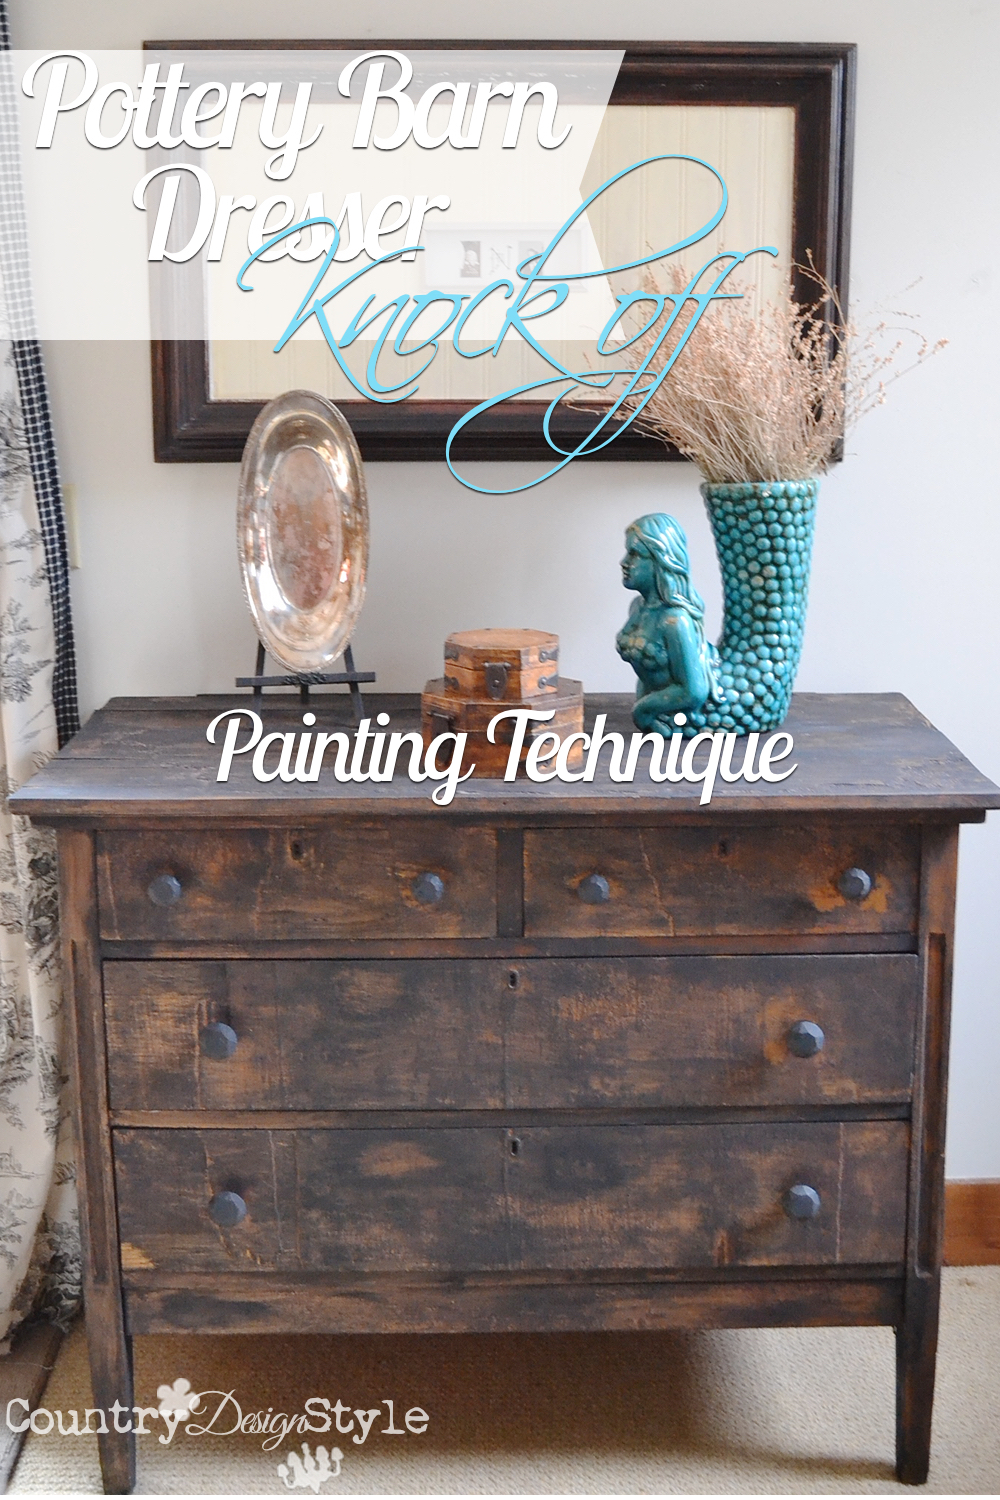 pottery-barn-inspired-painting-technique-country-design-style-pn2